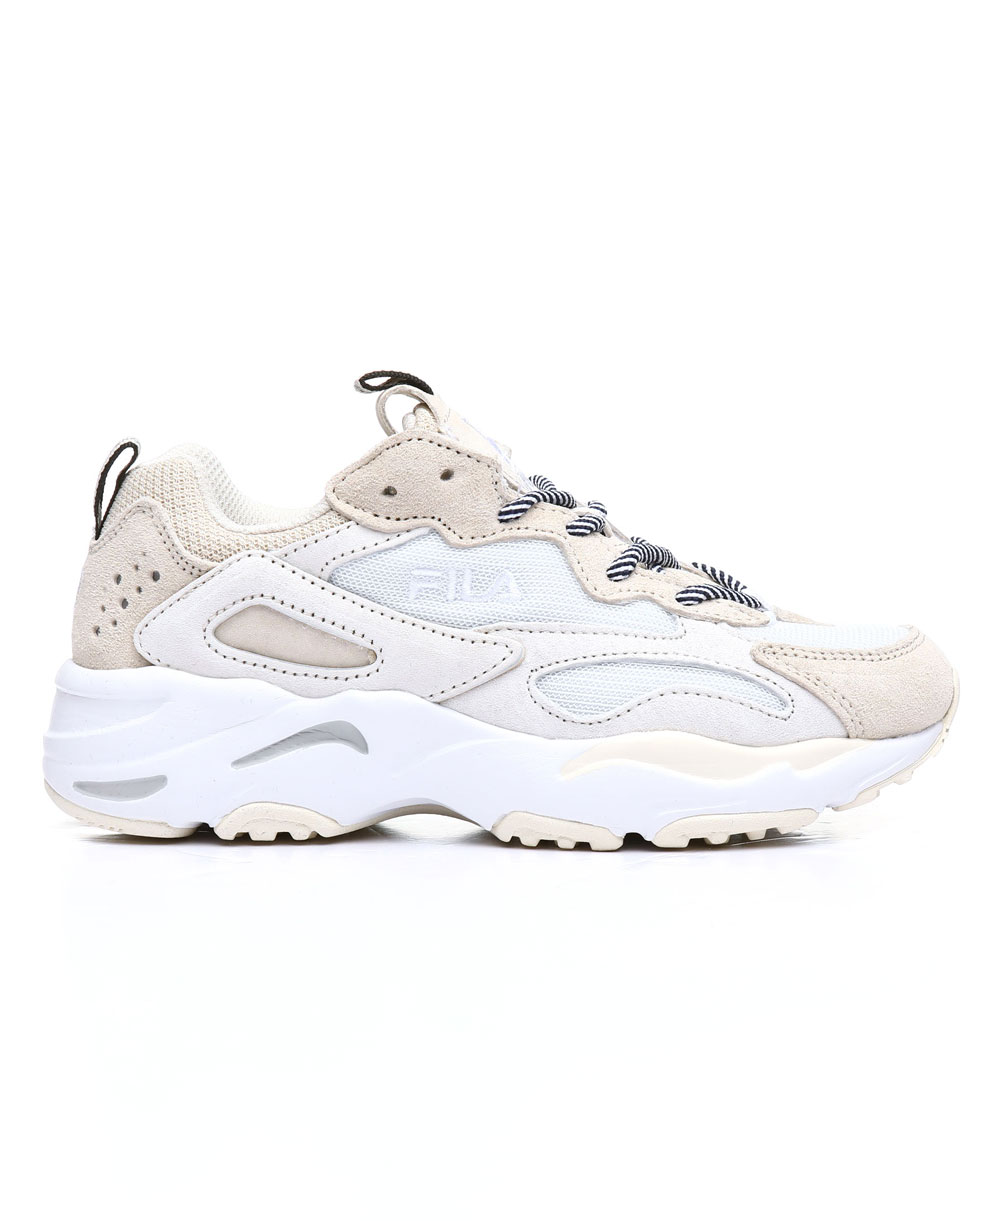 Ray Tracer Chaussures Sneakers Femme Beige